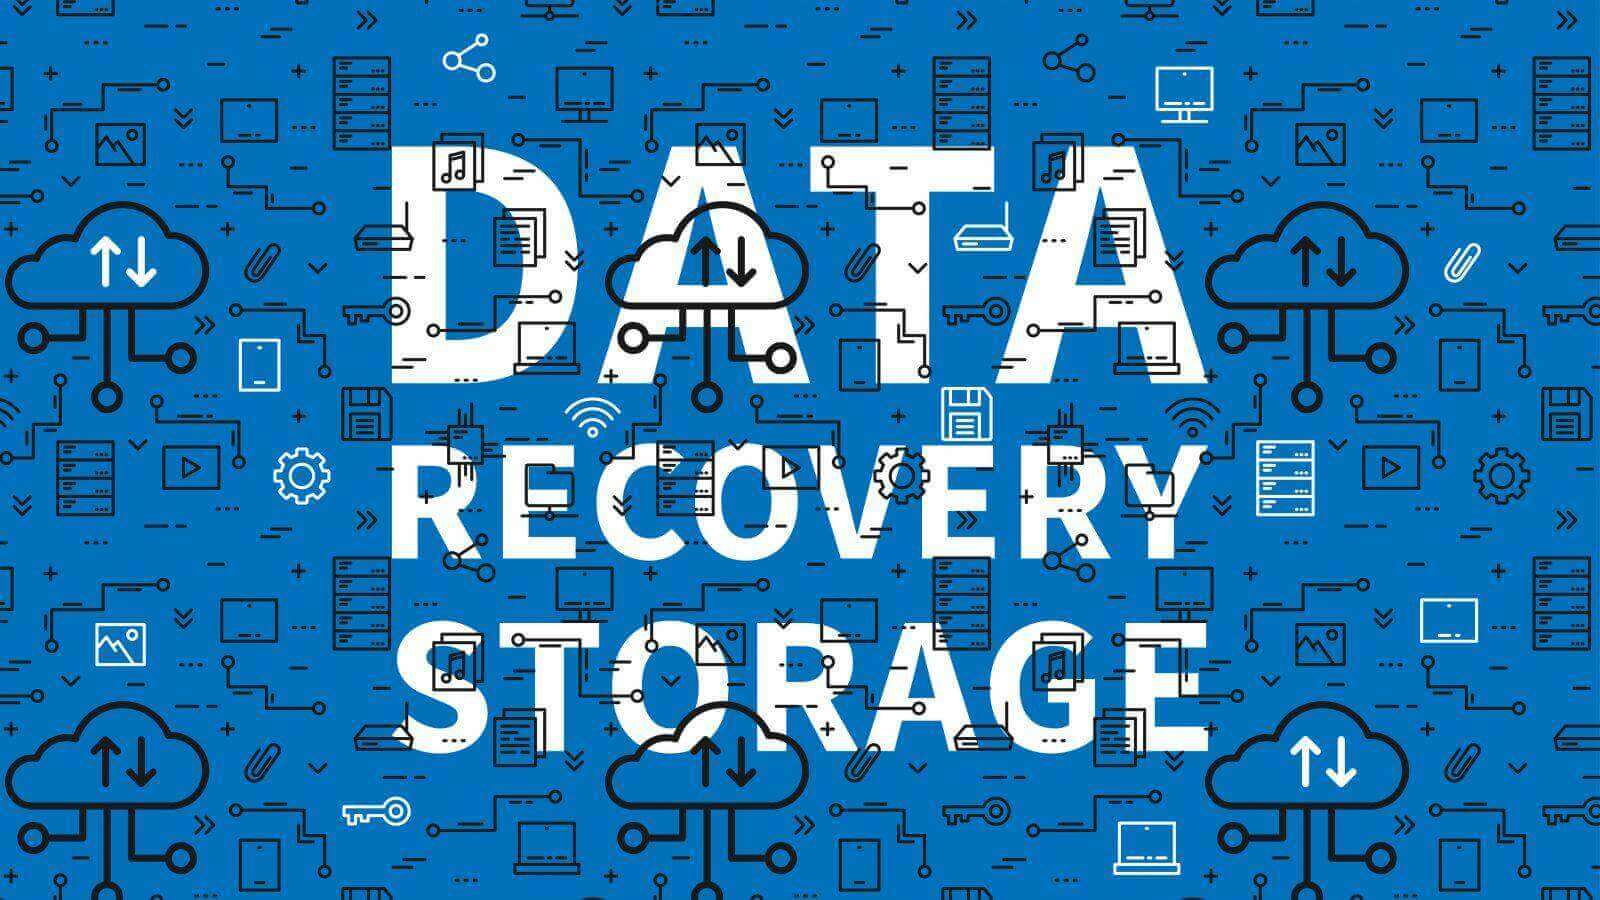 Data recovery storage vector illustration with pattern background. Server cloud technology graphic design. Remote file recovery storage creative concept. Line art concept.